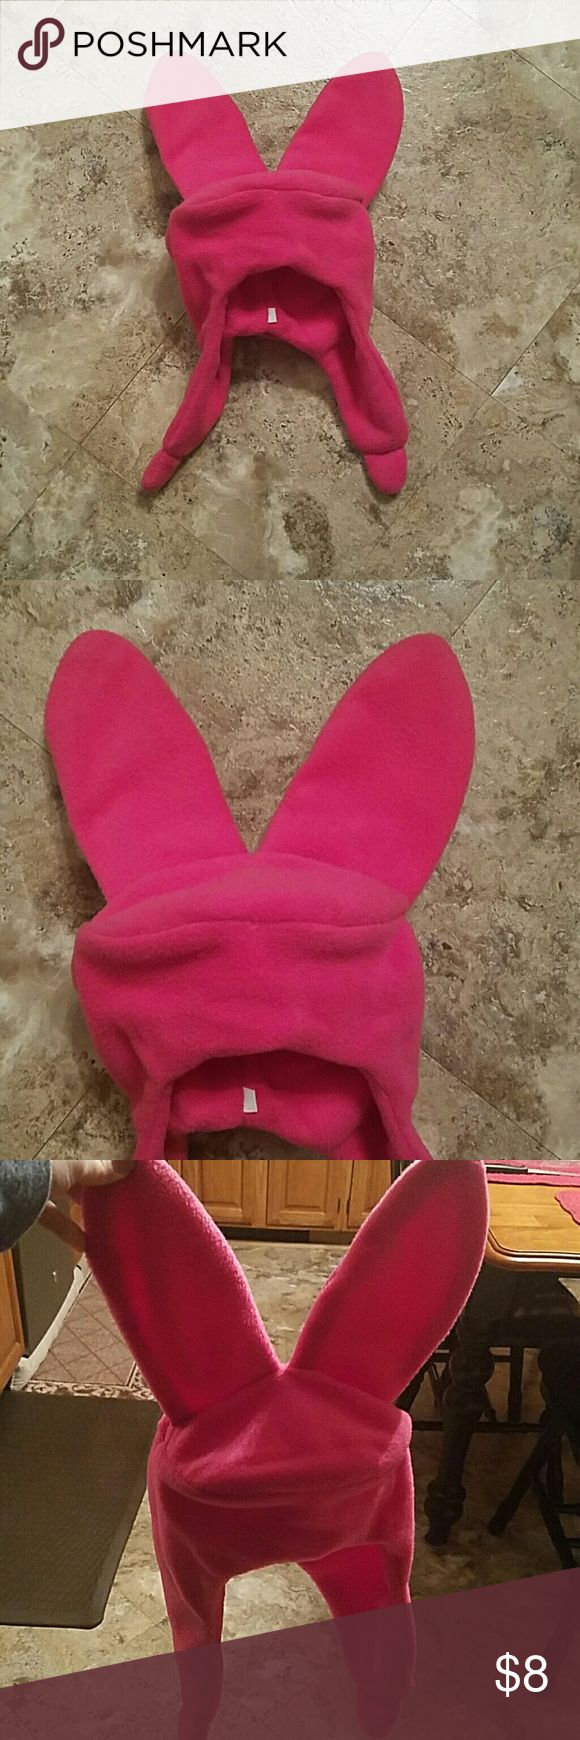 Bunny Hat Pink bunny Hat similar to what Louise wears in bobs burgers! Funny cool hat.  Has a wire that keeps the ears up and frames the top of the hat around the head. Accessories Hats